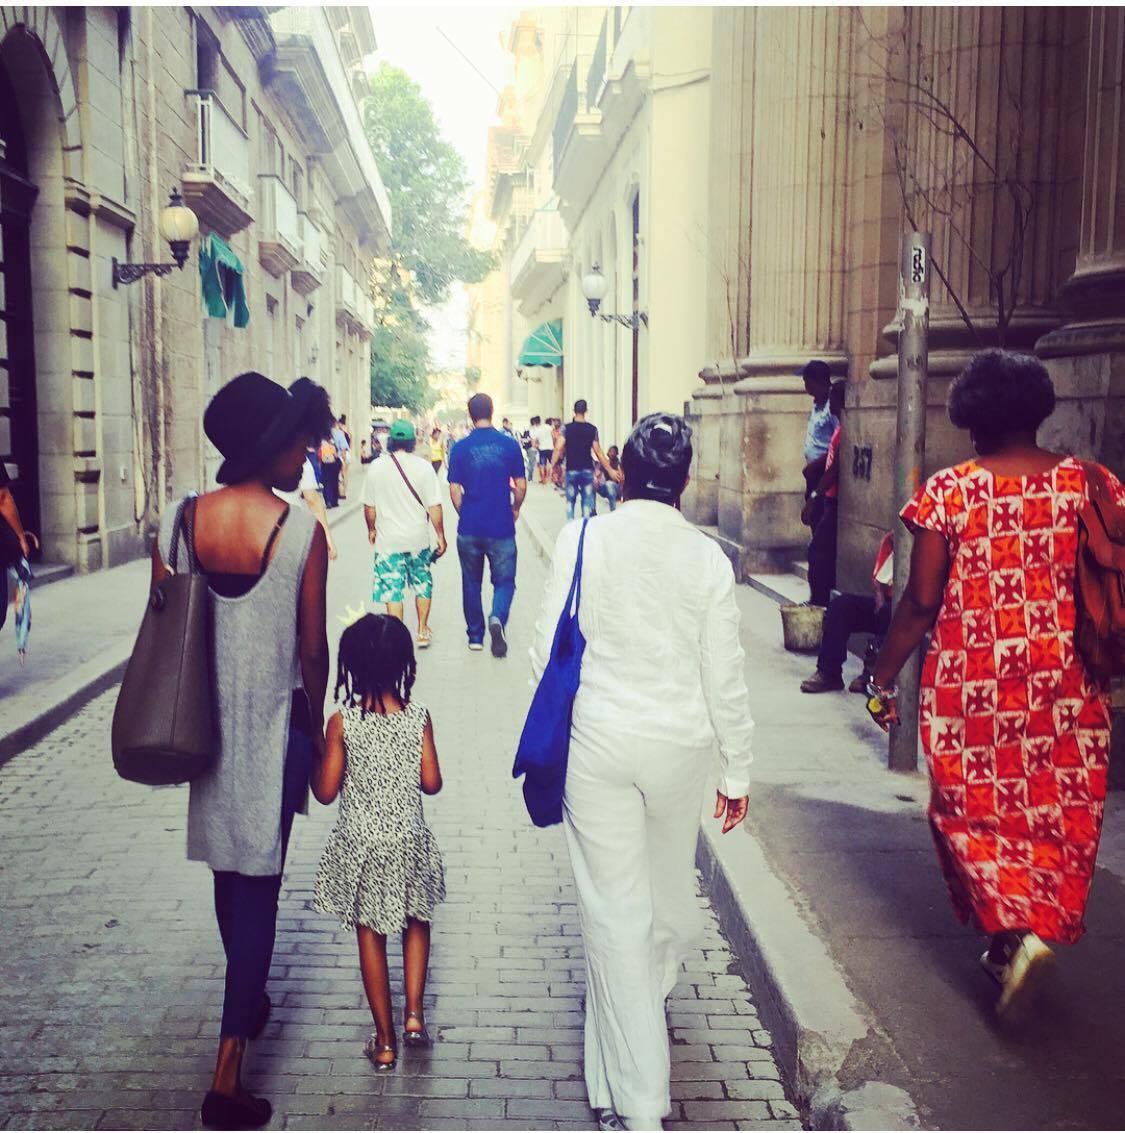 Afro Cubans: We Are Many